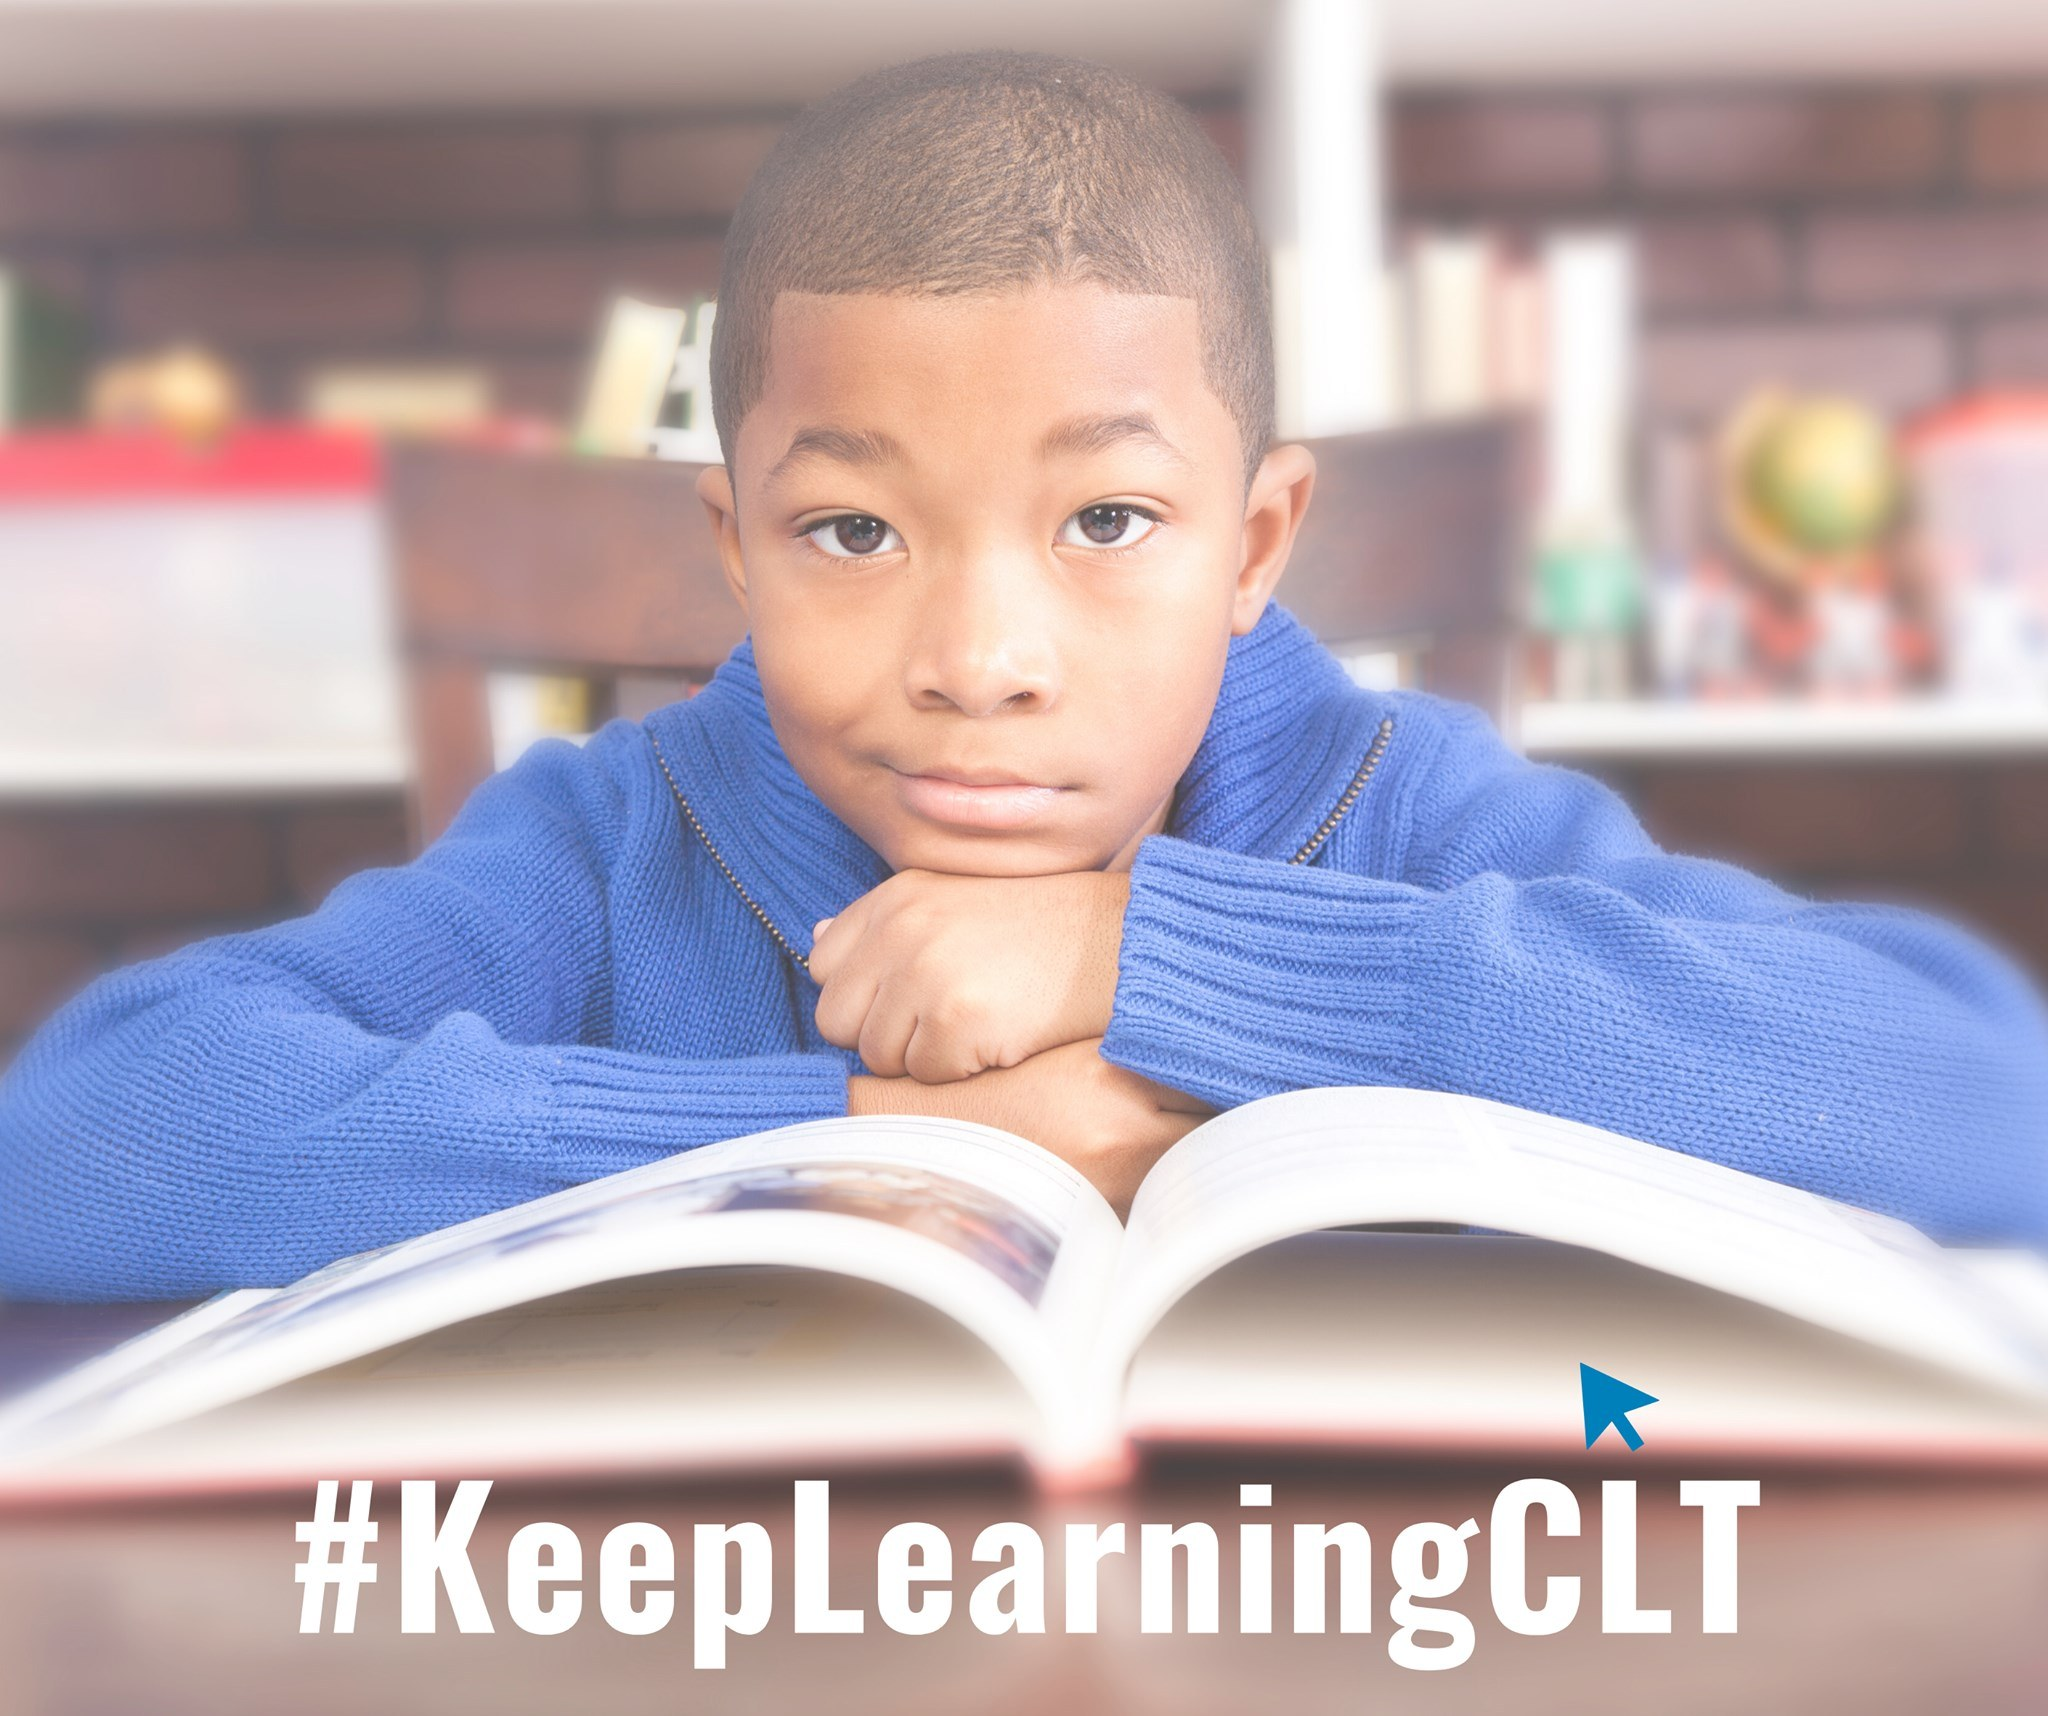 Keep learning clt image